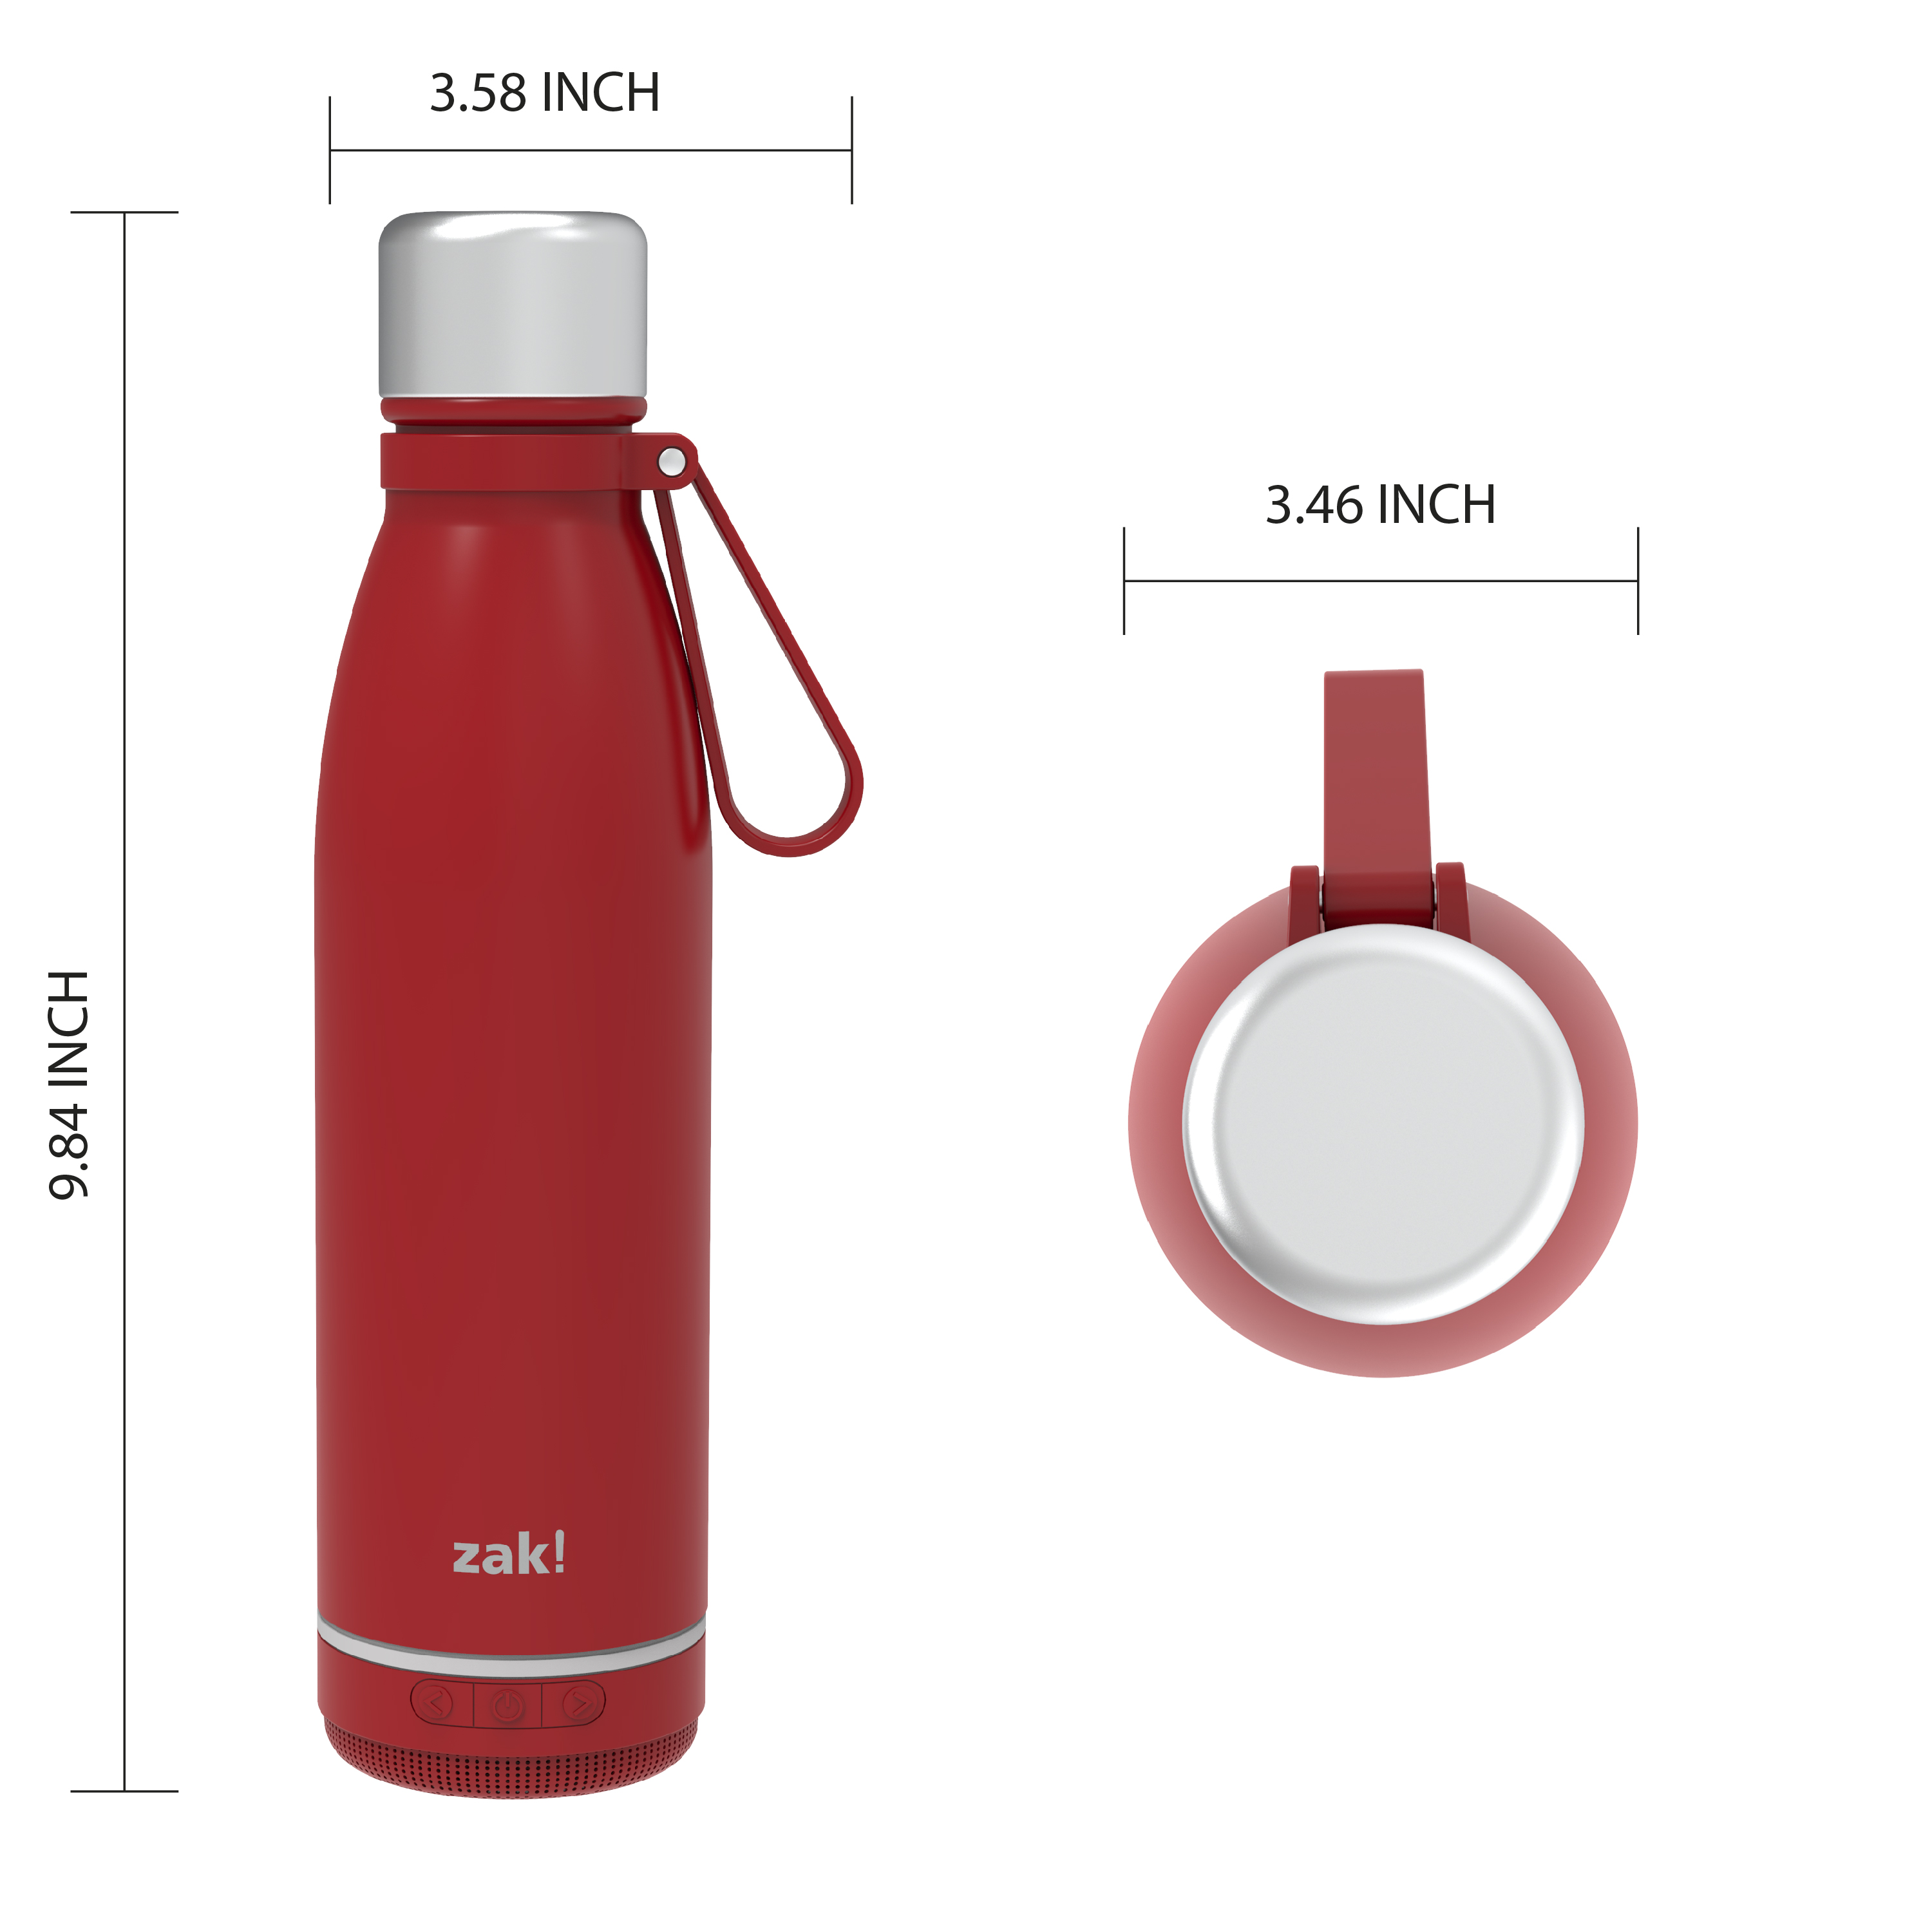 Zak Play 17.5 ounce Stainless Steel Tumbler with Bluetooth Speaker, Red slideshow image 6